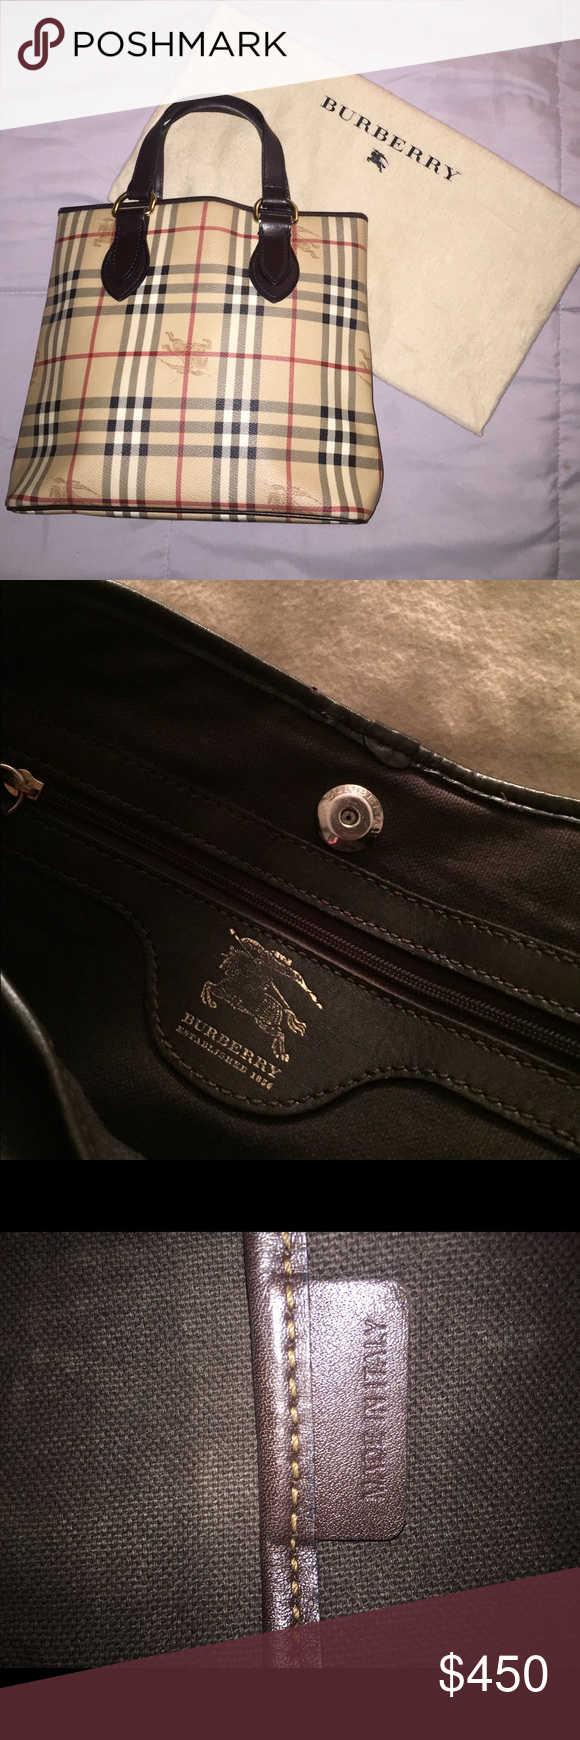 e68640bd75 BURBERRY Chester Check Haymarket Handbag Tote This GORGEOUS, authentic,  made in Italy, Burberry